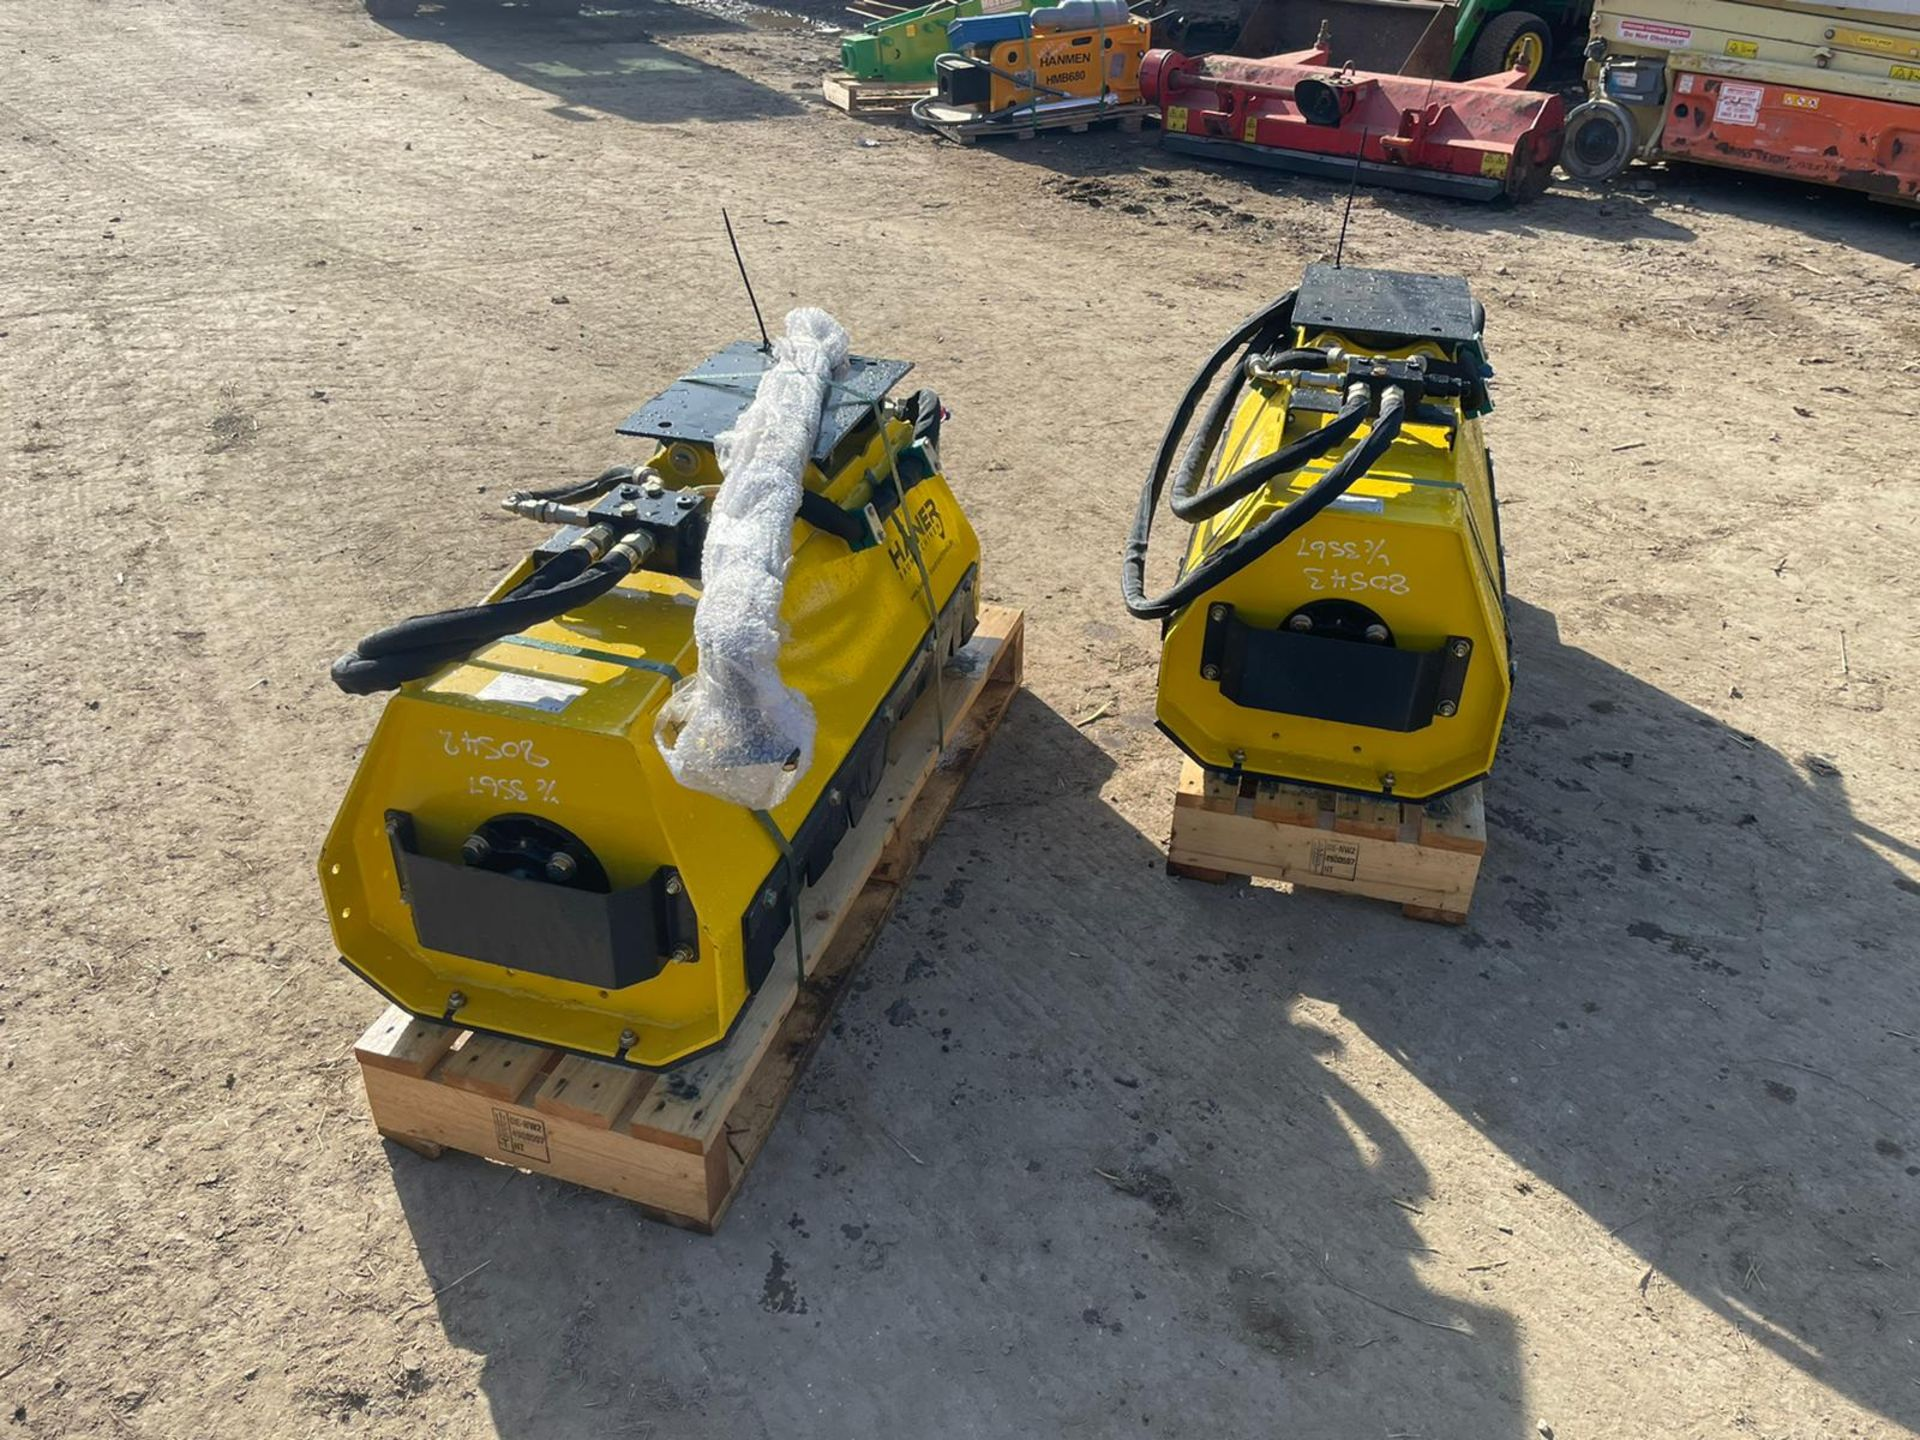 BRAND NEW AND UNUSED HANER HML800 MUNCHER, SUITABLE FOR 2-5 TON EXCAVATOR *PLUS VAT* - Image 5 of 5